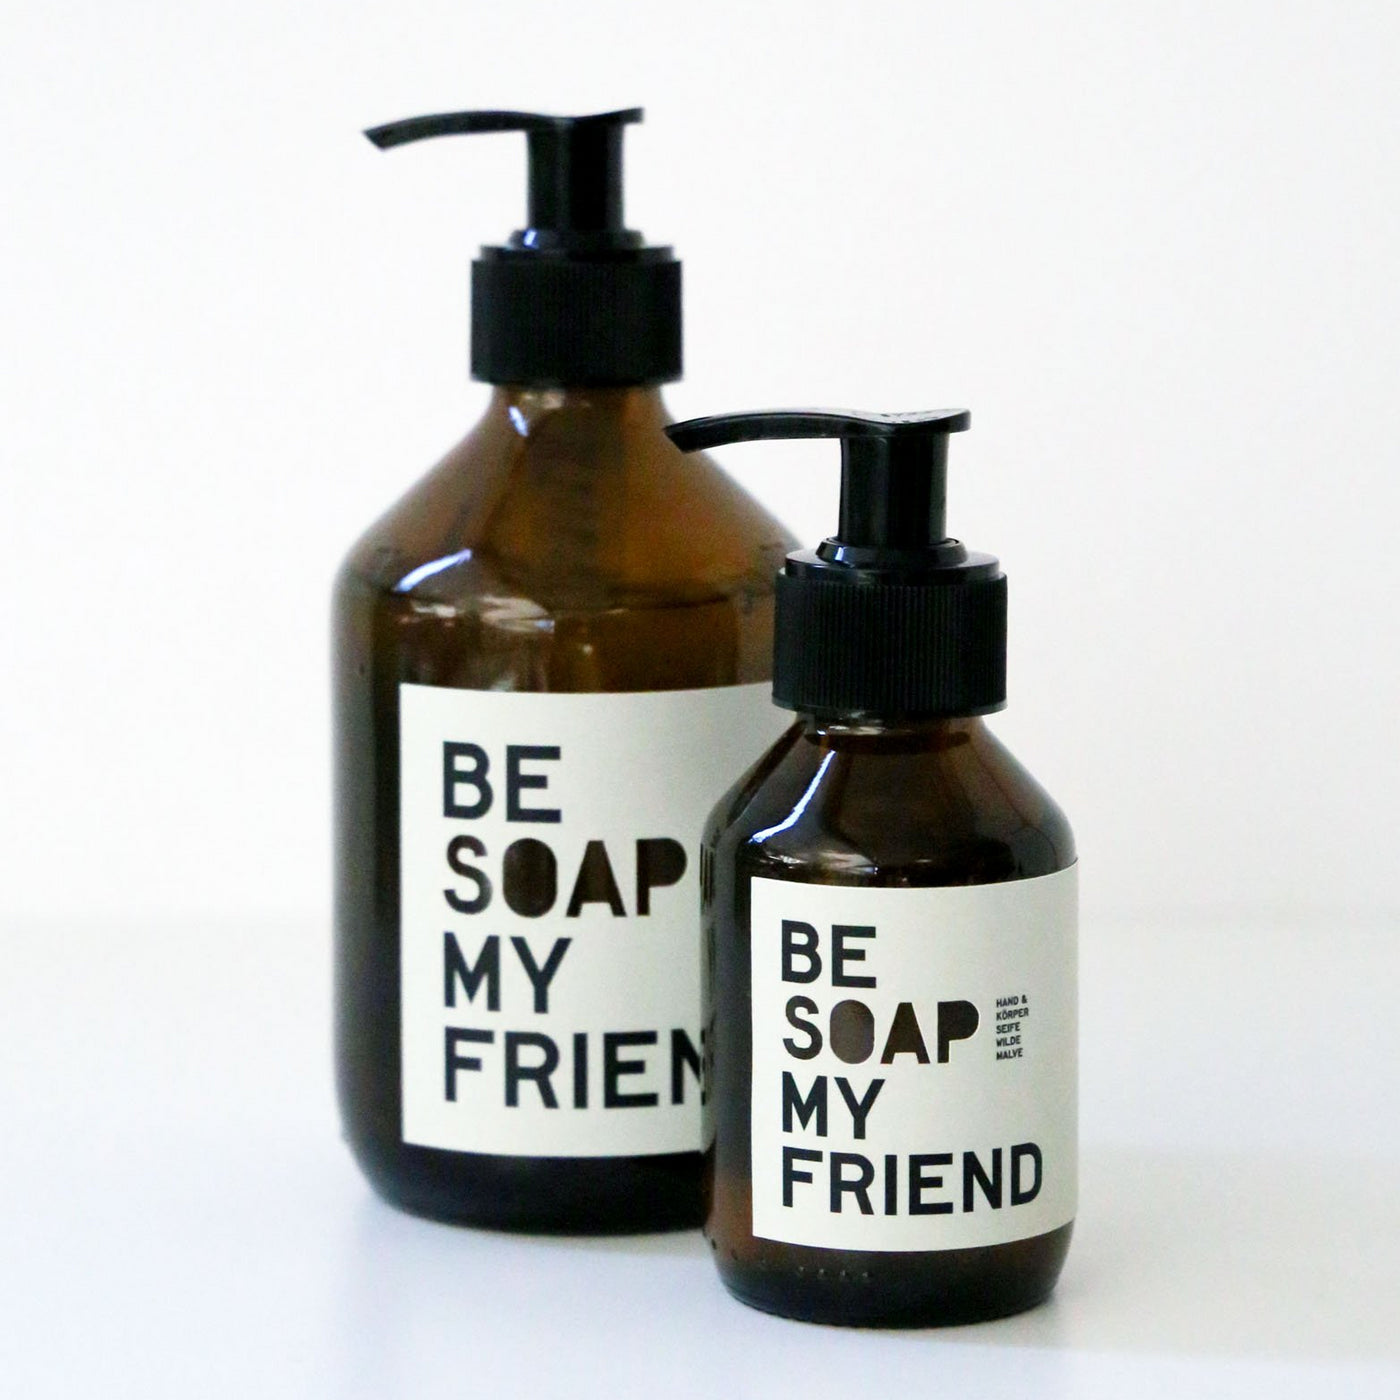 BE SOAP MY FRIEND, Hand- und Körperseife, Wilde Malve